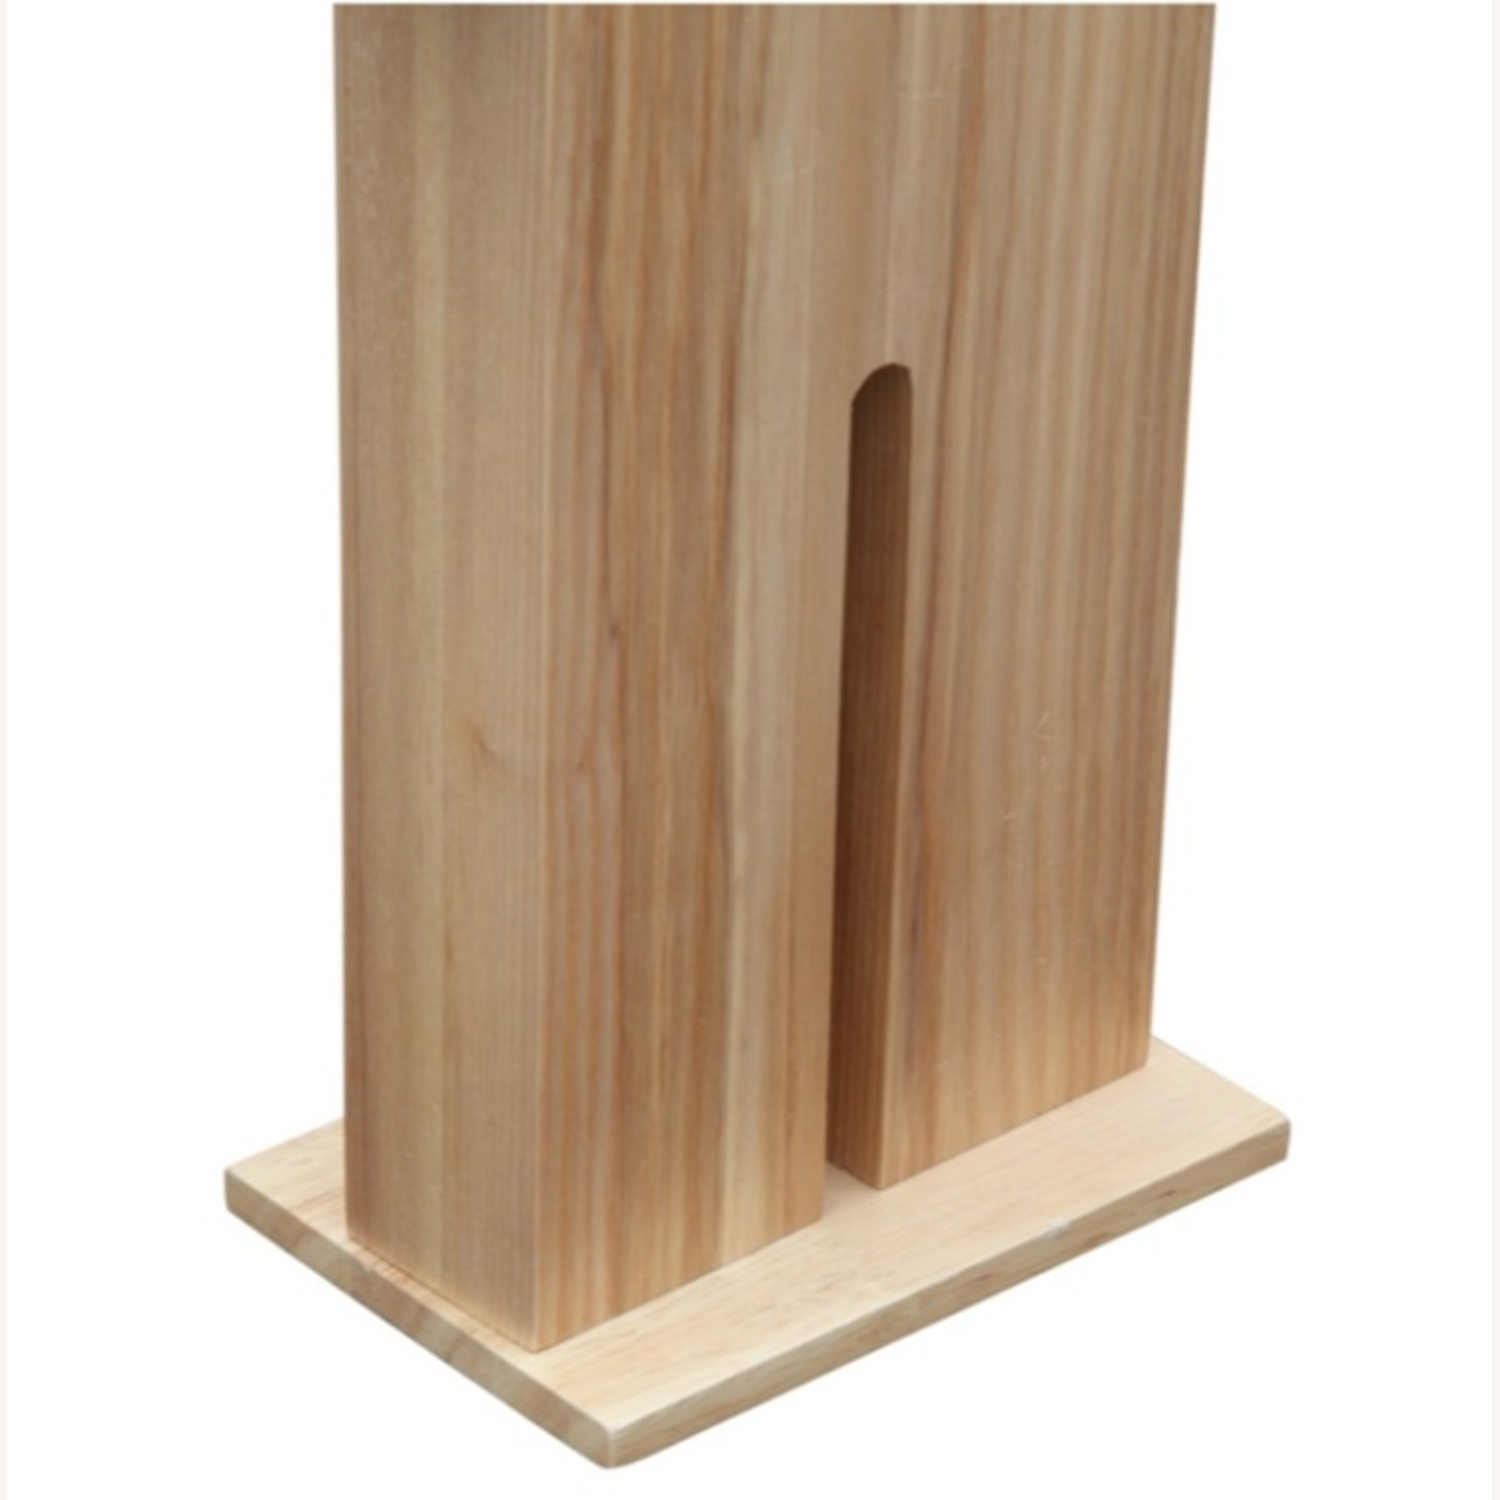 Table Lamp In Natural Wood W/ Male Person Design - image-4